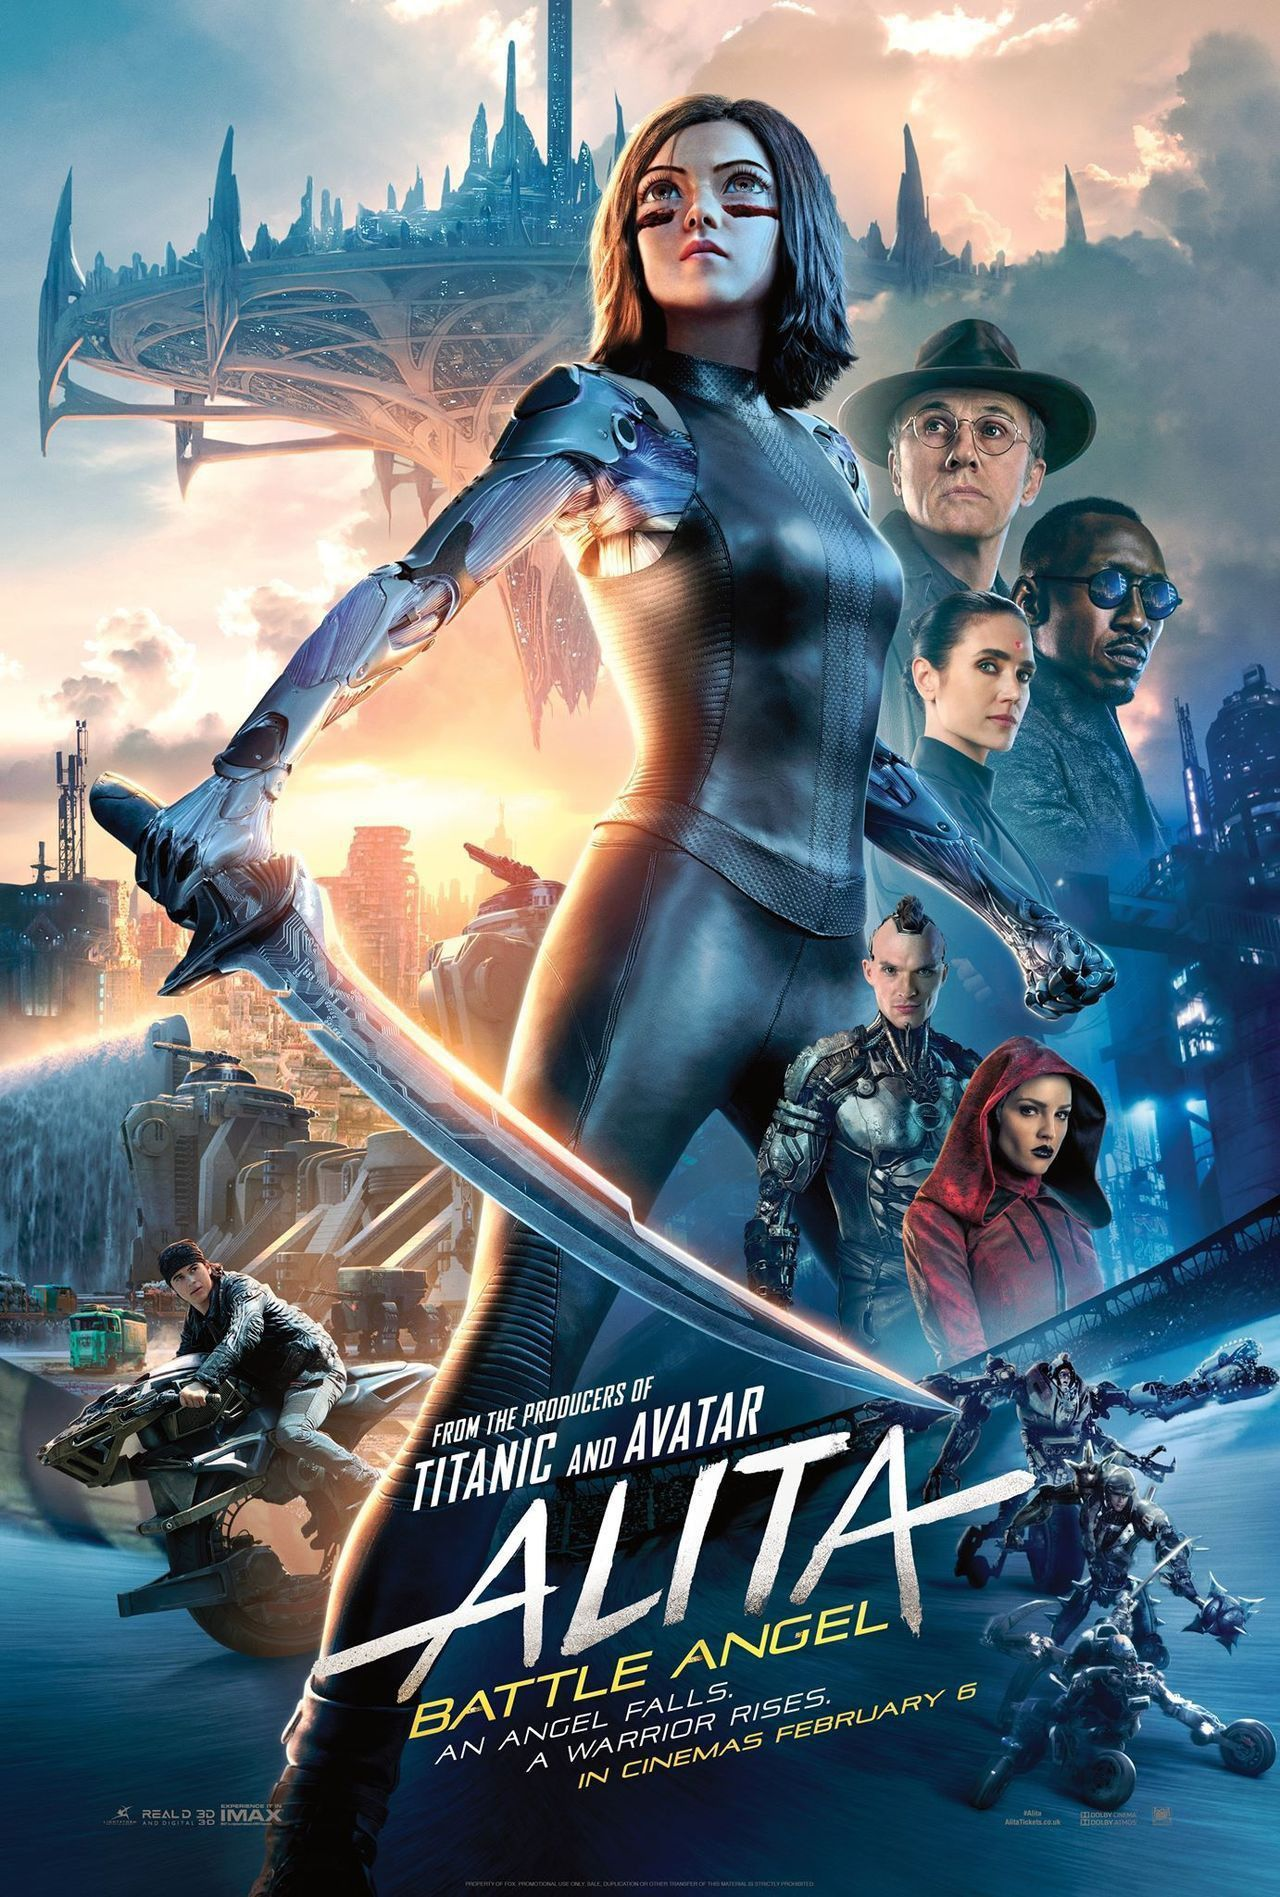 Battle Angel Alita Angel Movie Free Movies Online Full Movies Online Free